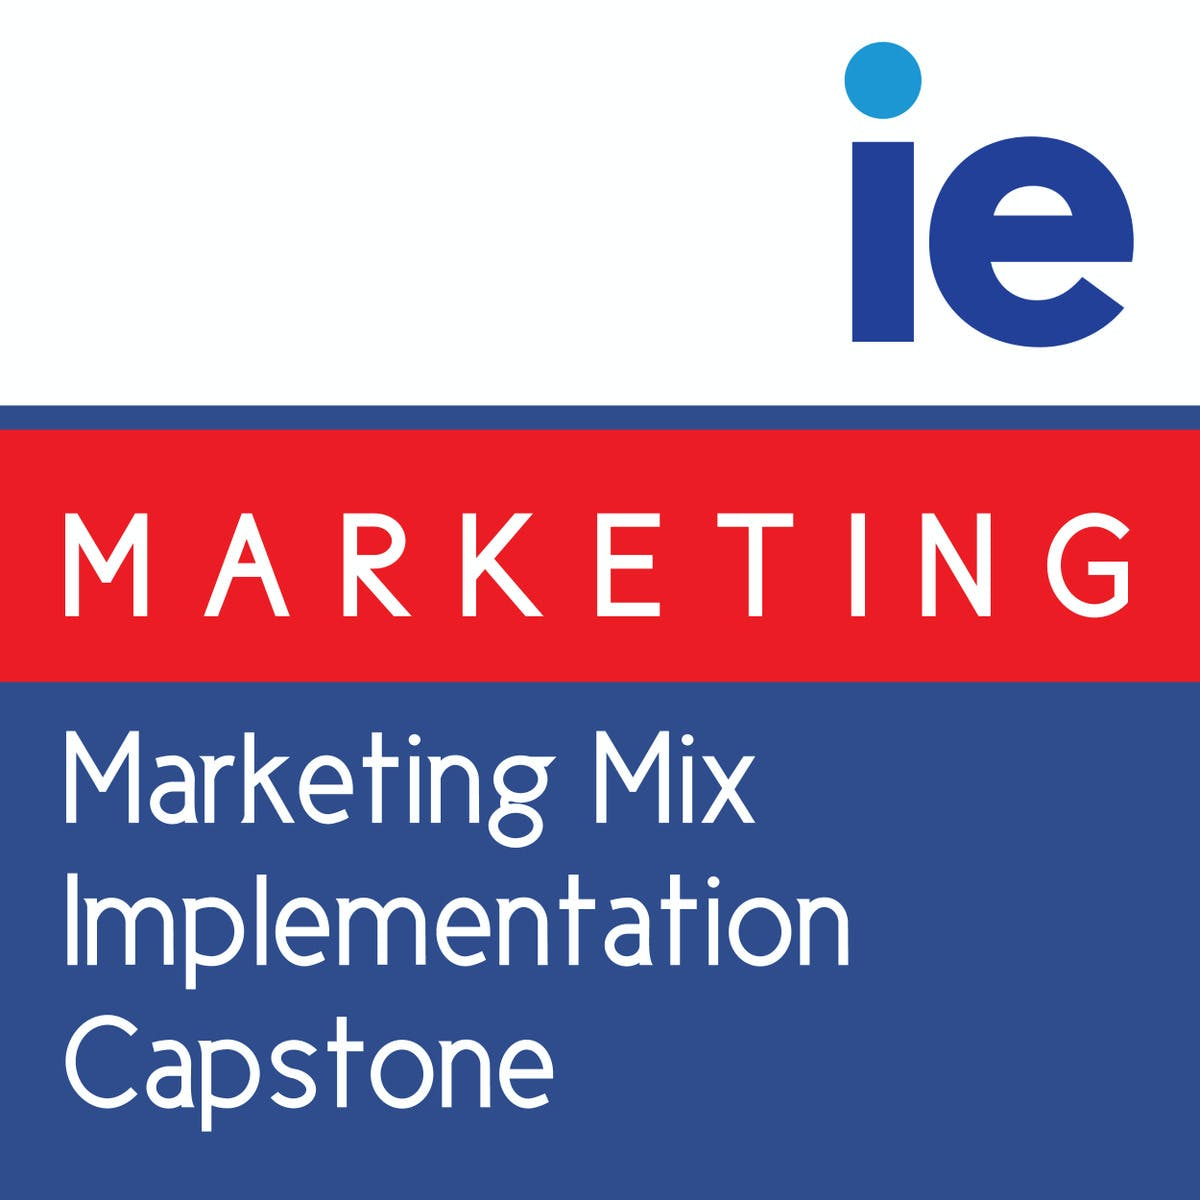 Marketing Mix Implementation Capstone